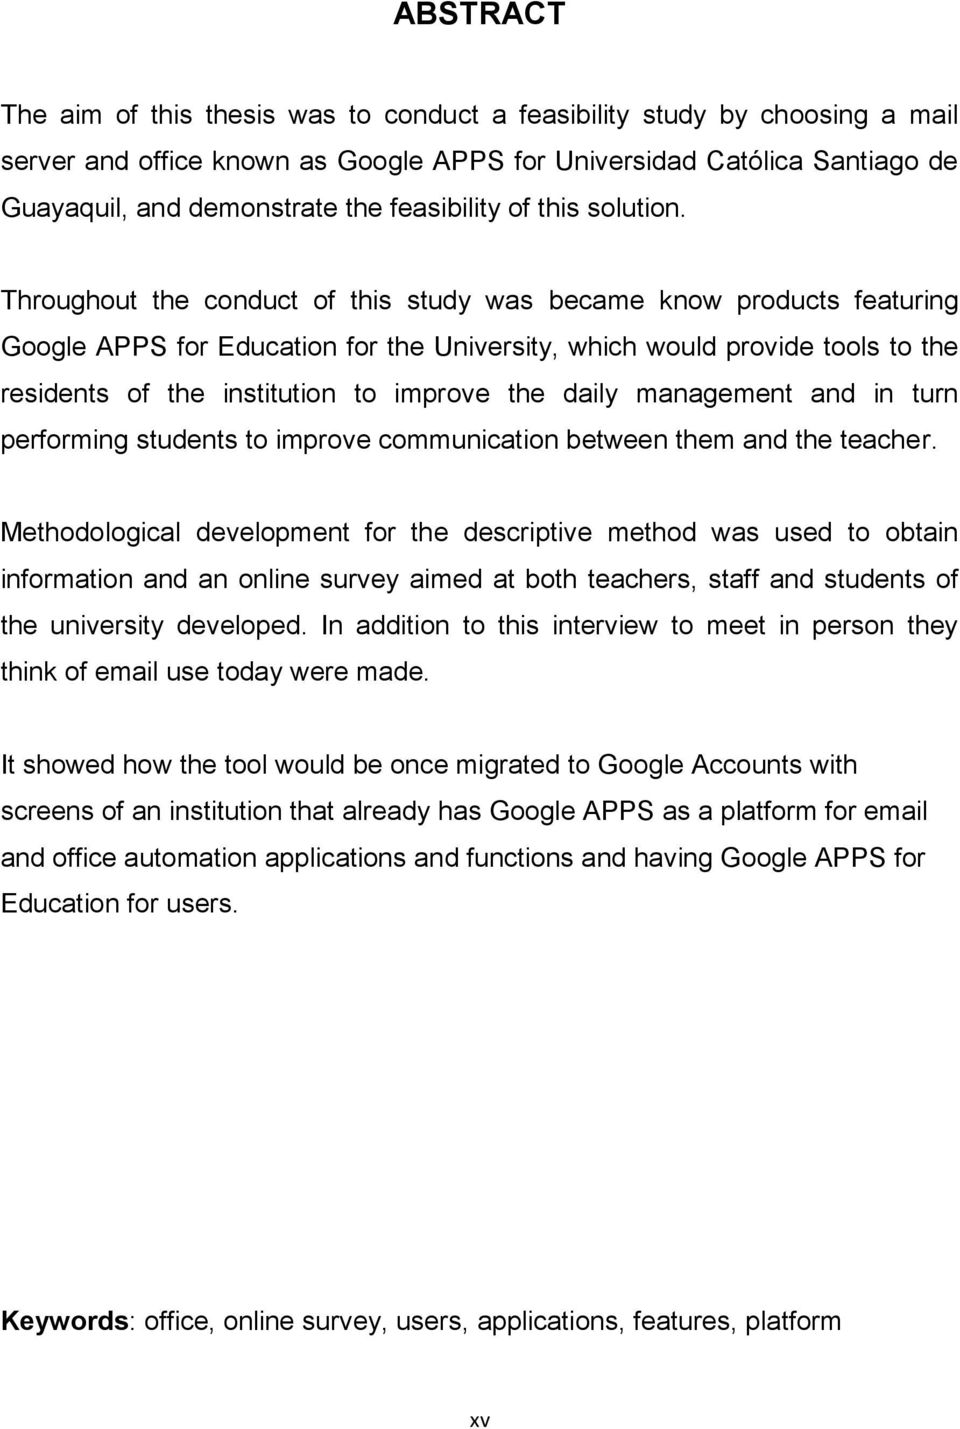 Throughout the conduct of this study was became know products featuring Google APPS for Education for the University, which would provide tools to the residents of the institution to improve the